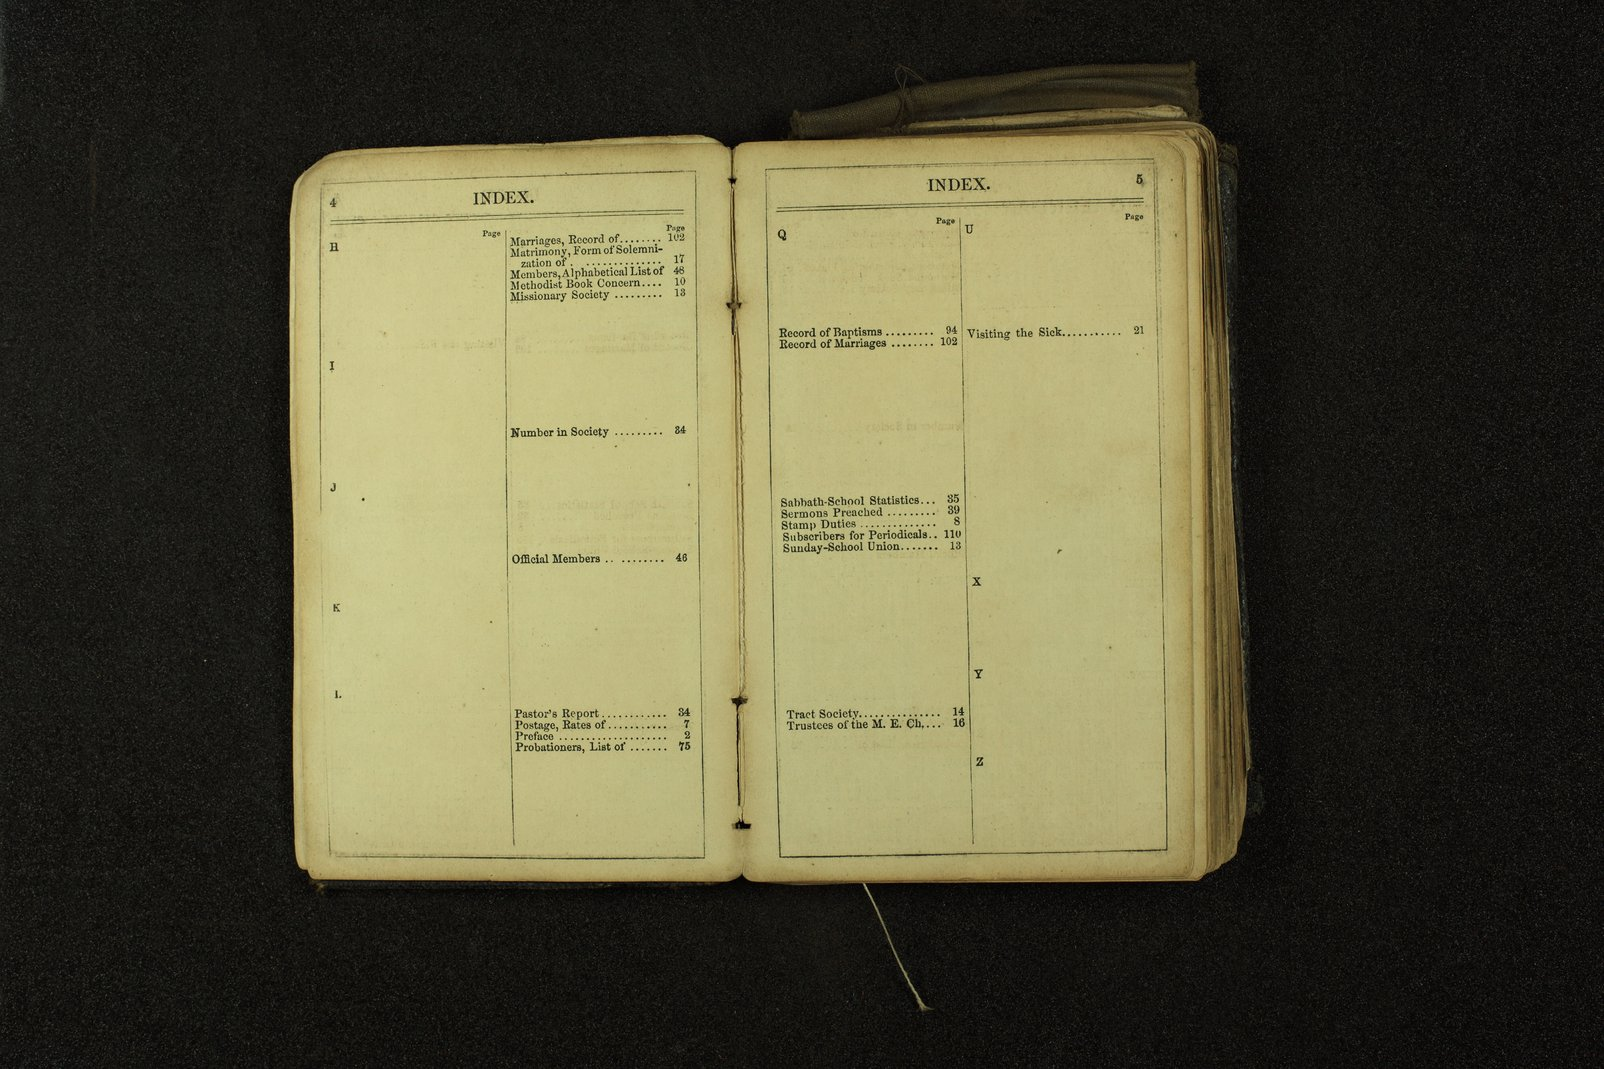 Clergyman's pocket diary and visiting book belonging to Boston Corbett - 4 & 5